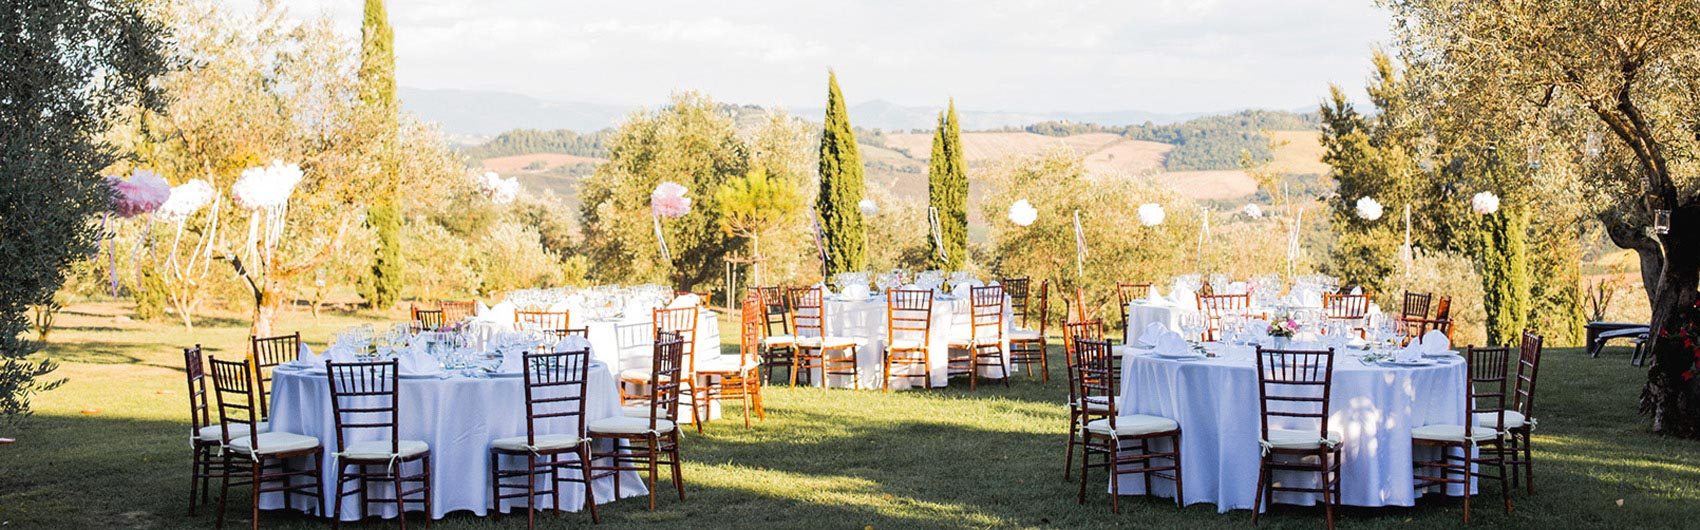 weddings-umbria